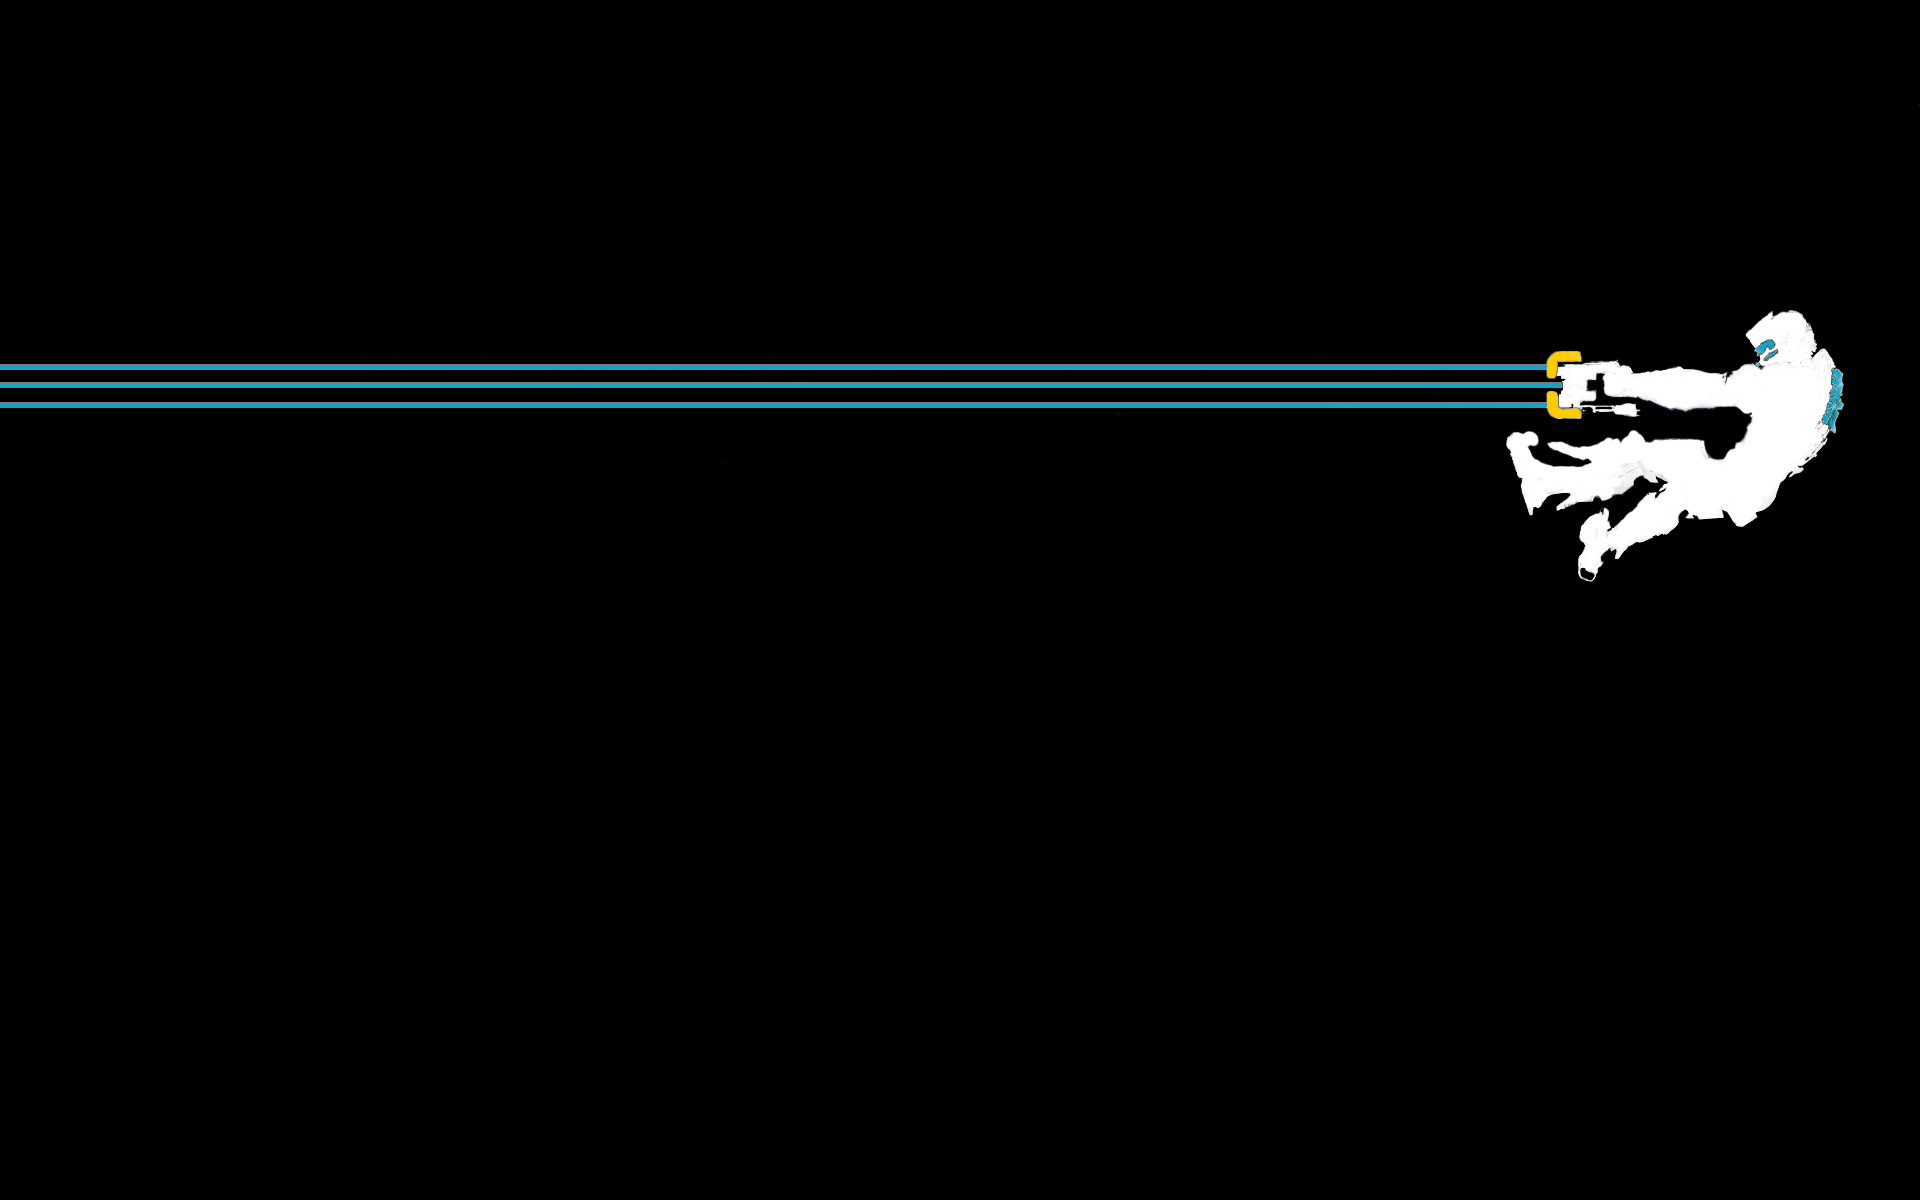 A small collection of video game minimalist wallpapers